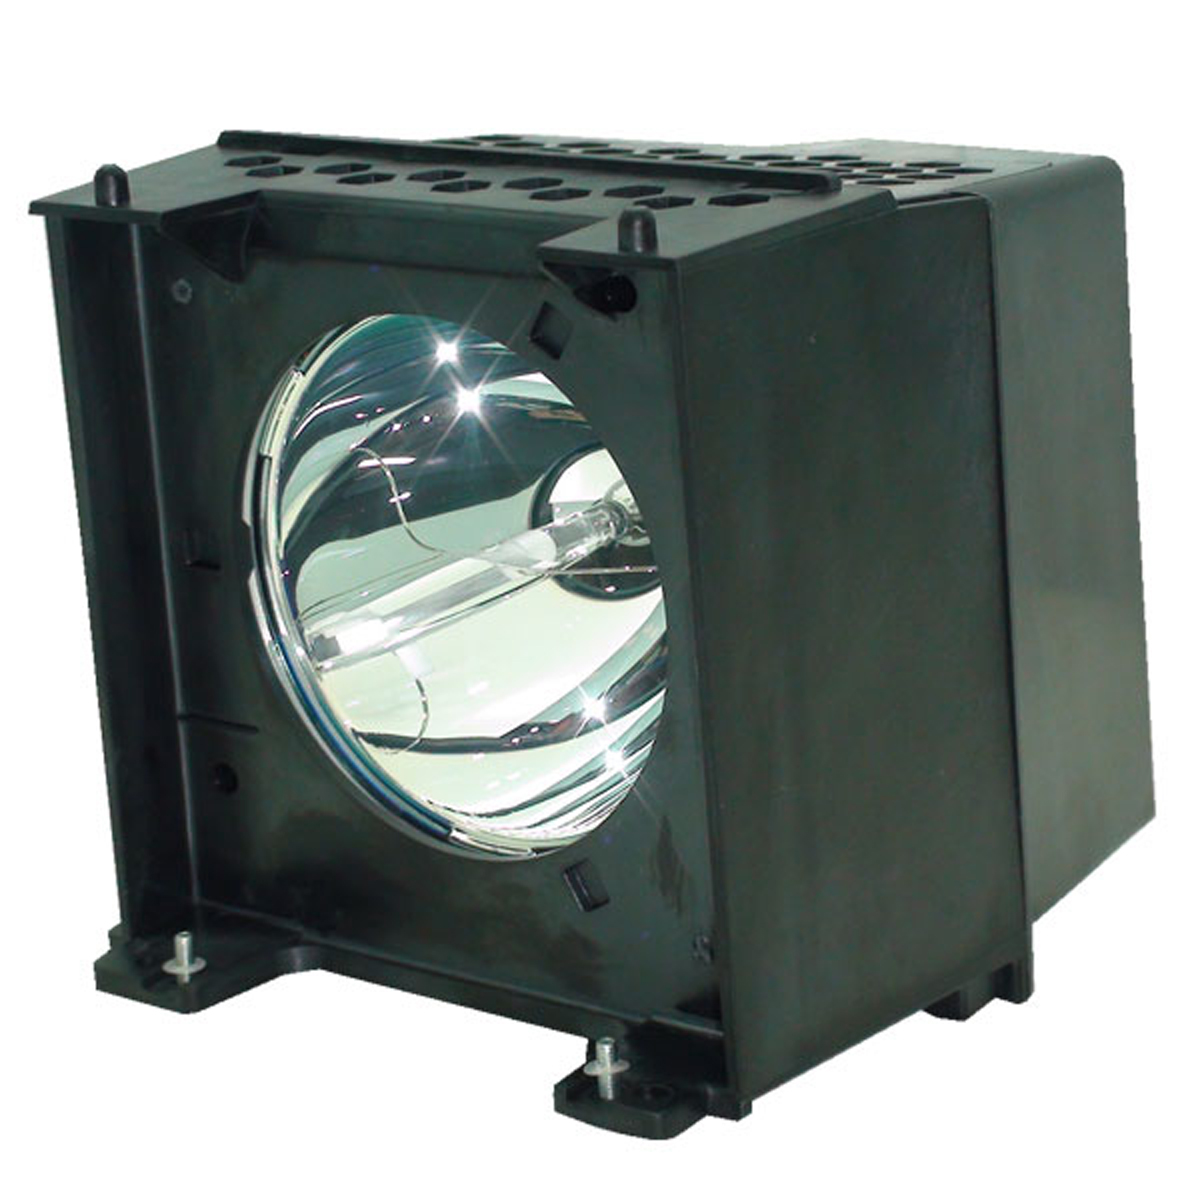 Phoenix OEM Lamp Housing For Toshiba 56HM16 Projection TV...